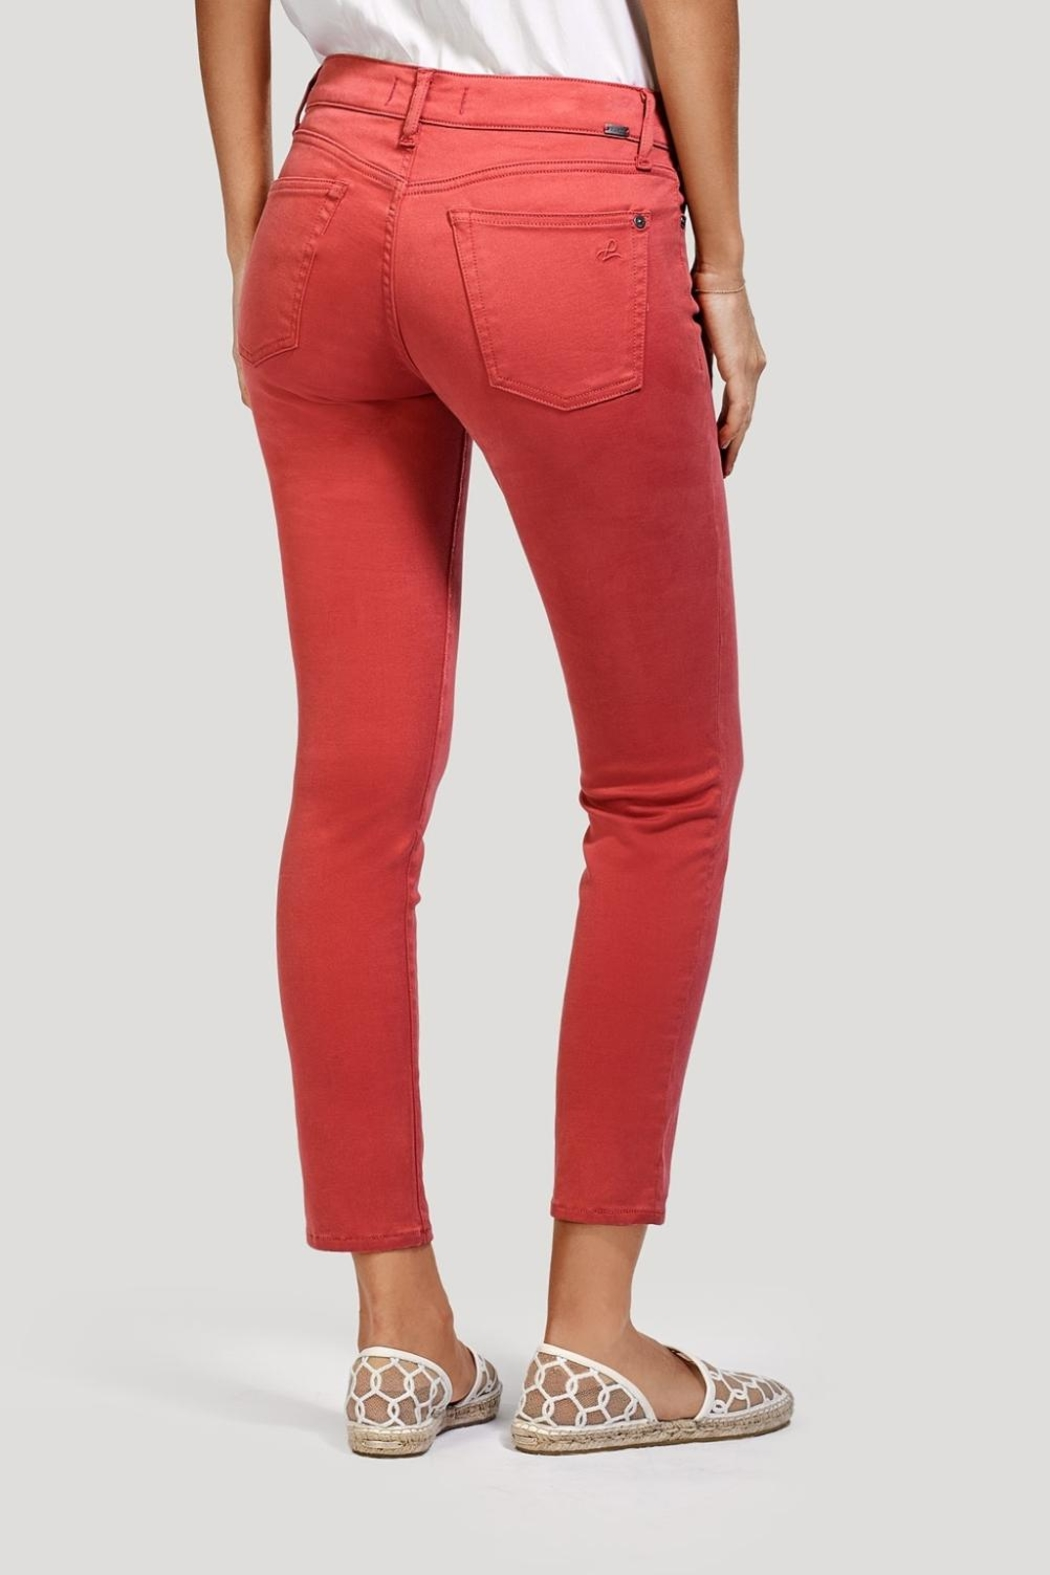 DL 1961 Coral Ankle Skinny Jeans - Front Full Image